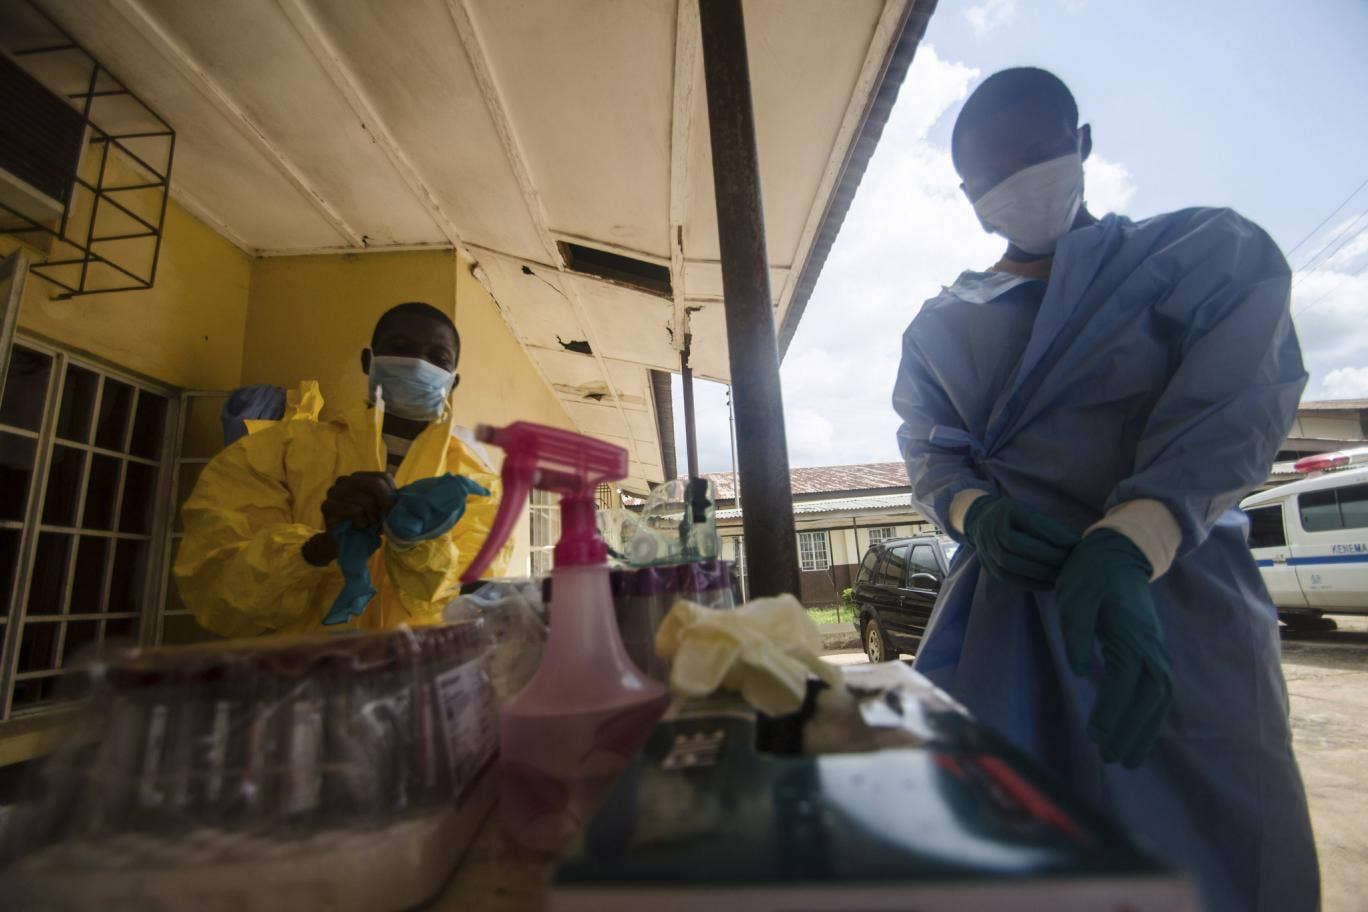 Health workers put on protective gear while working with suspected Ebola patients in Kenema, Sierra Leone